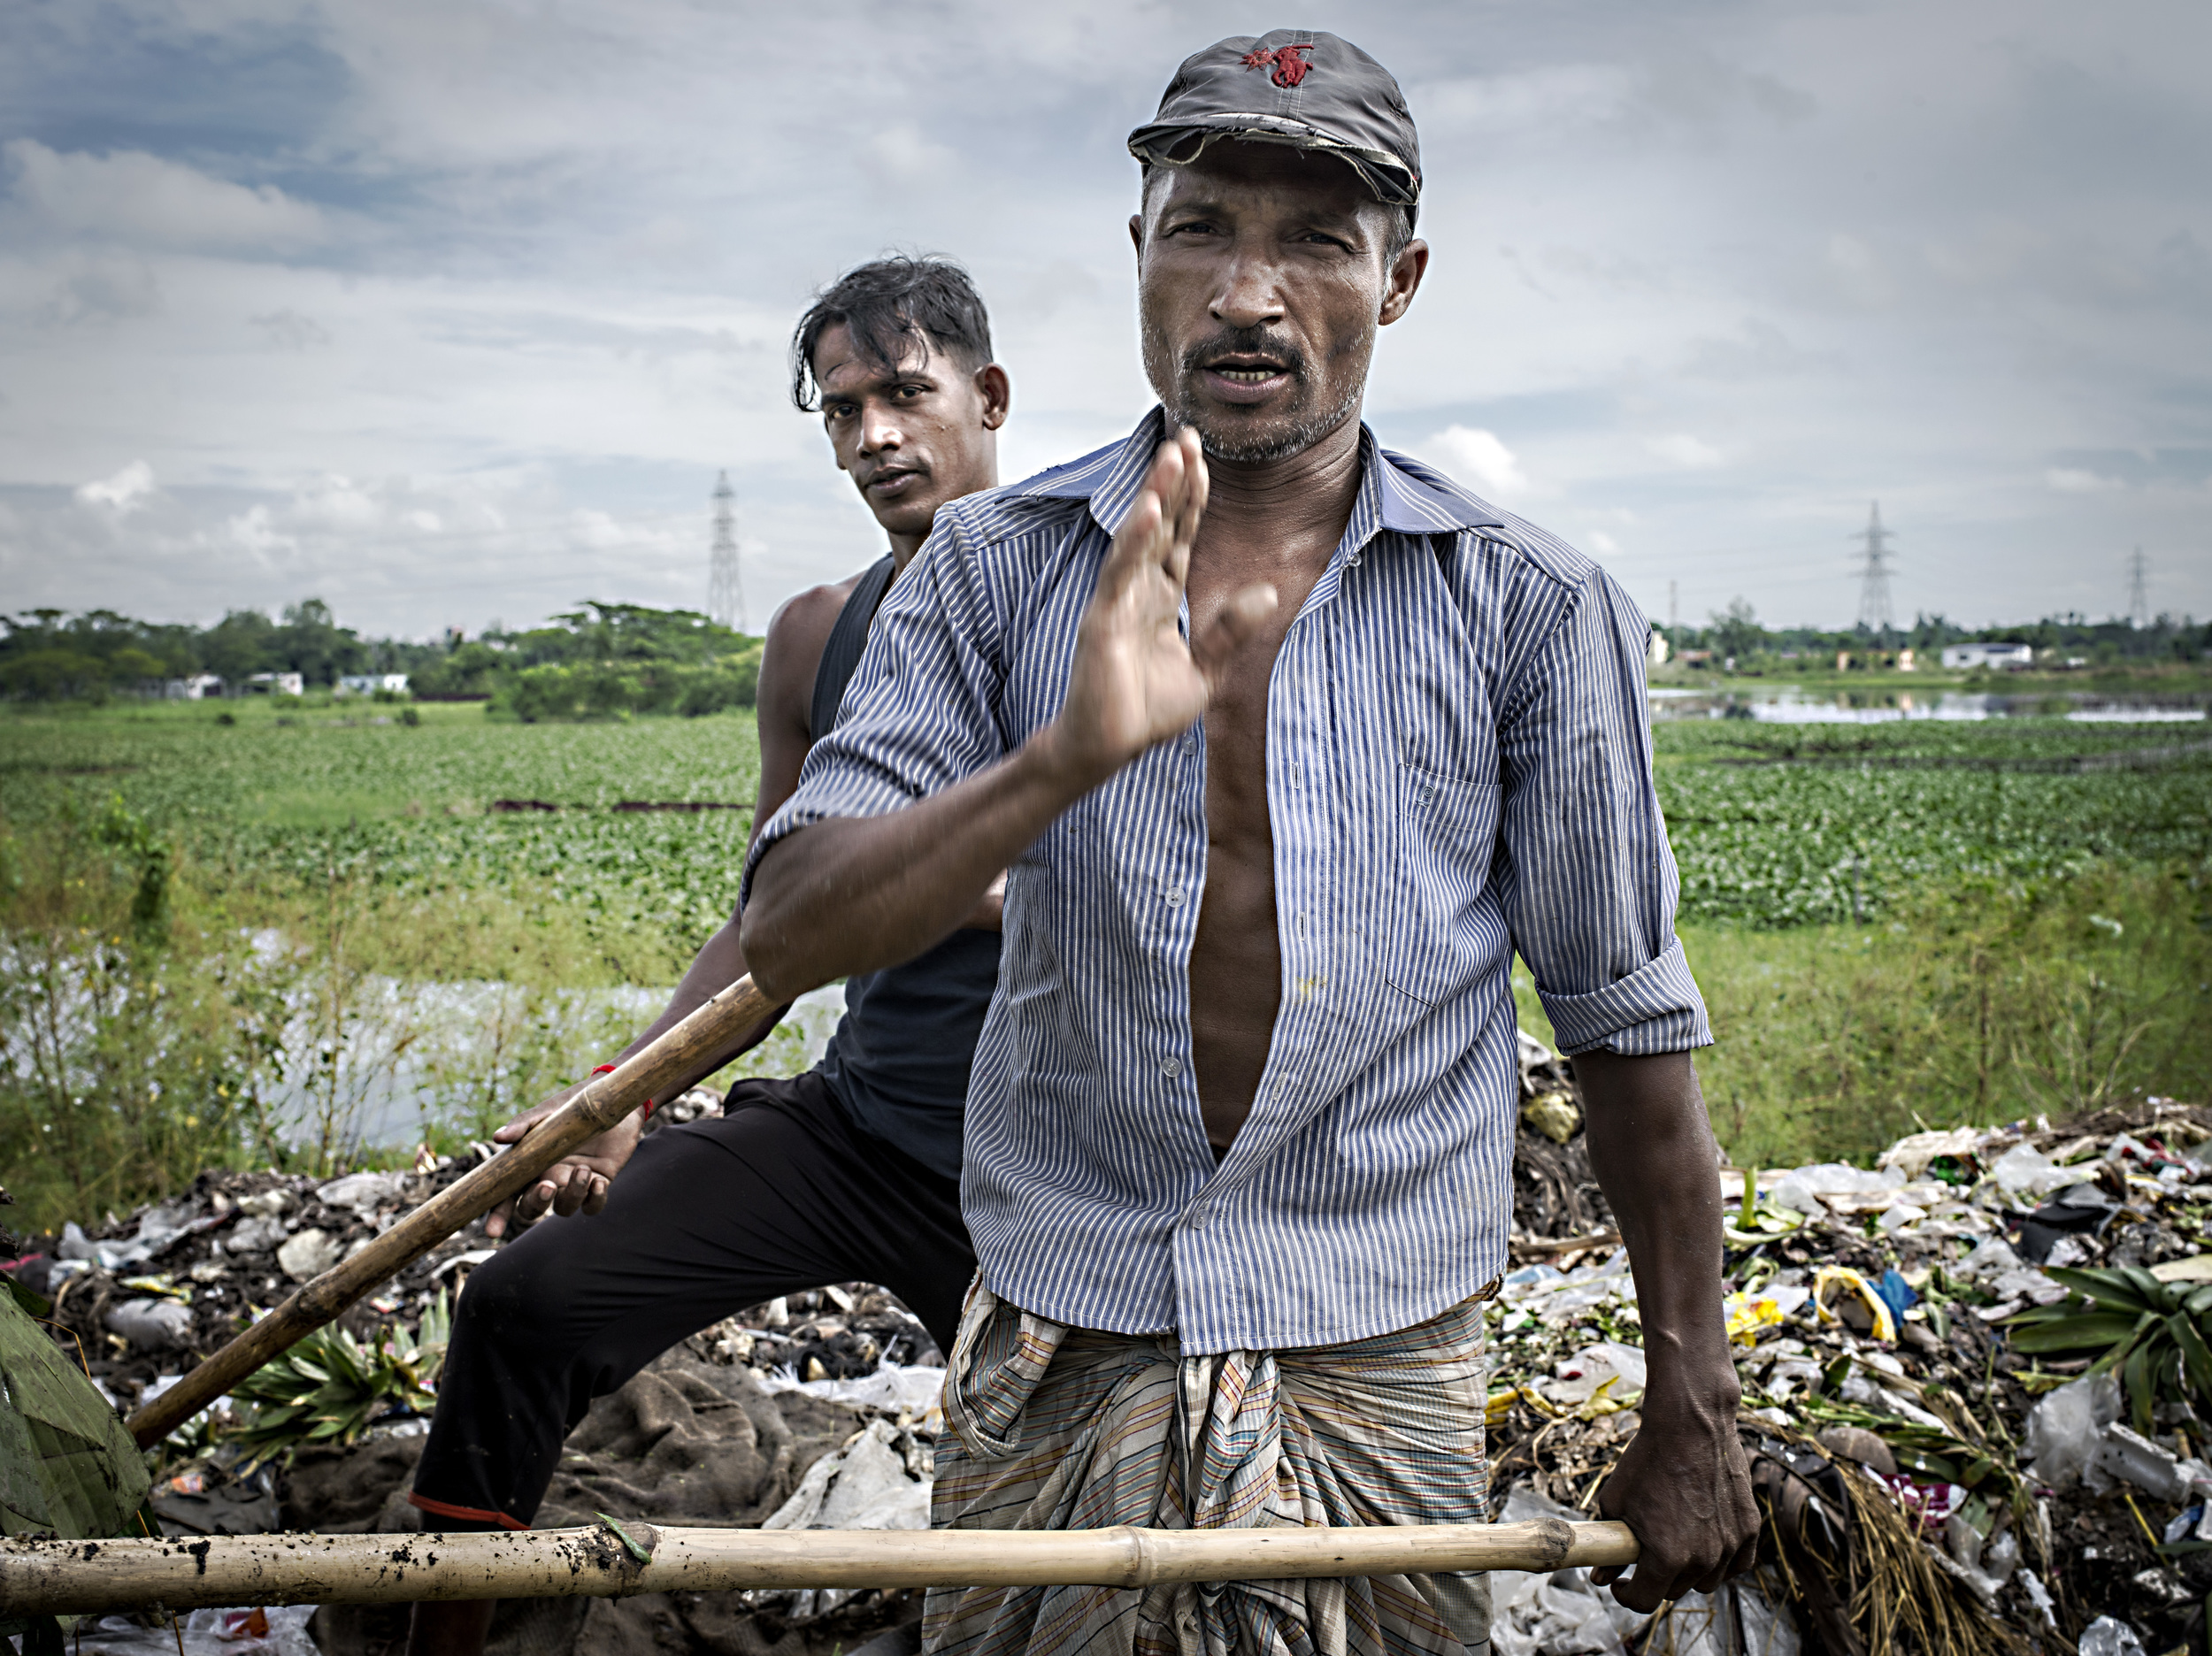 Men explaining how they sort trash at Narayanganj waste dump area.